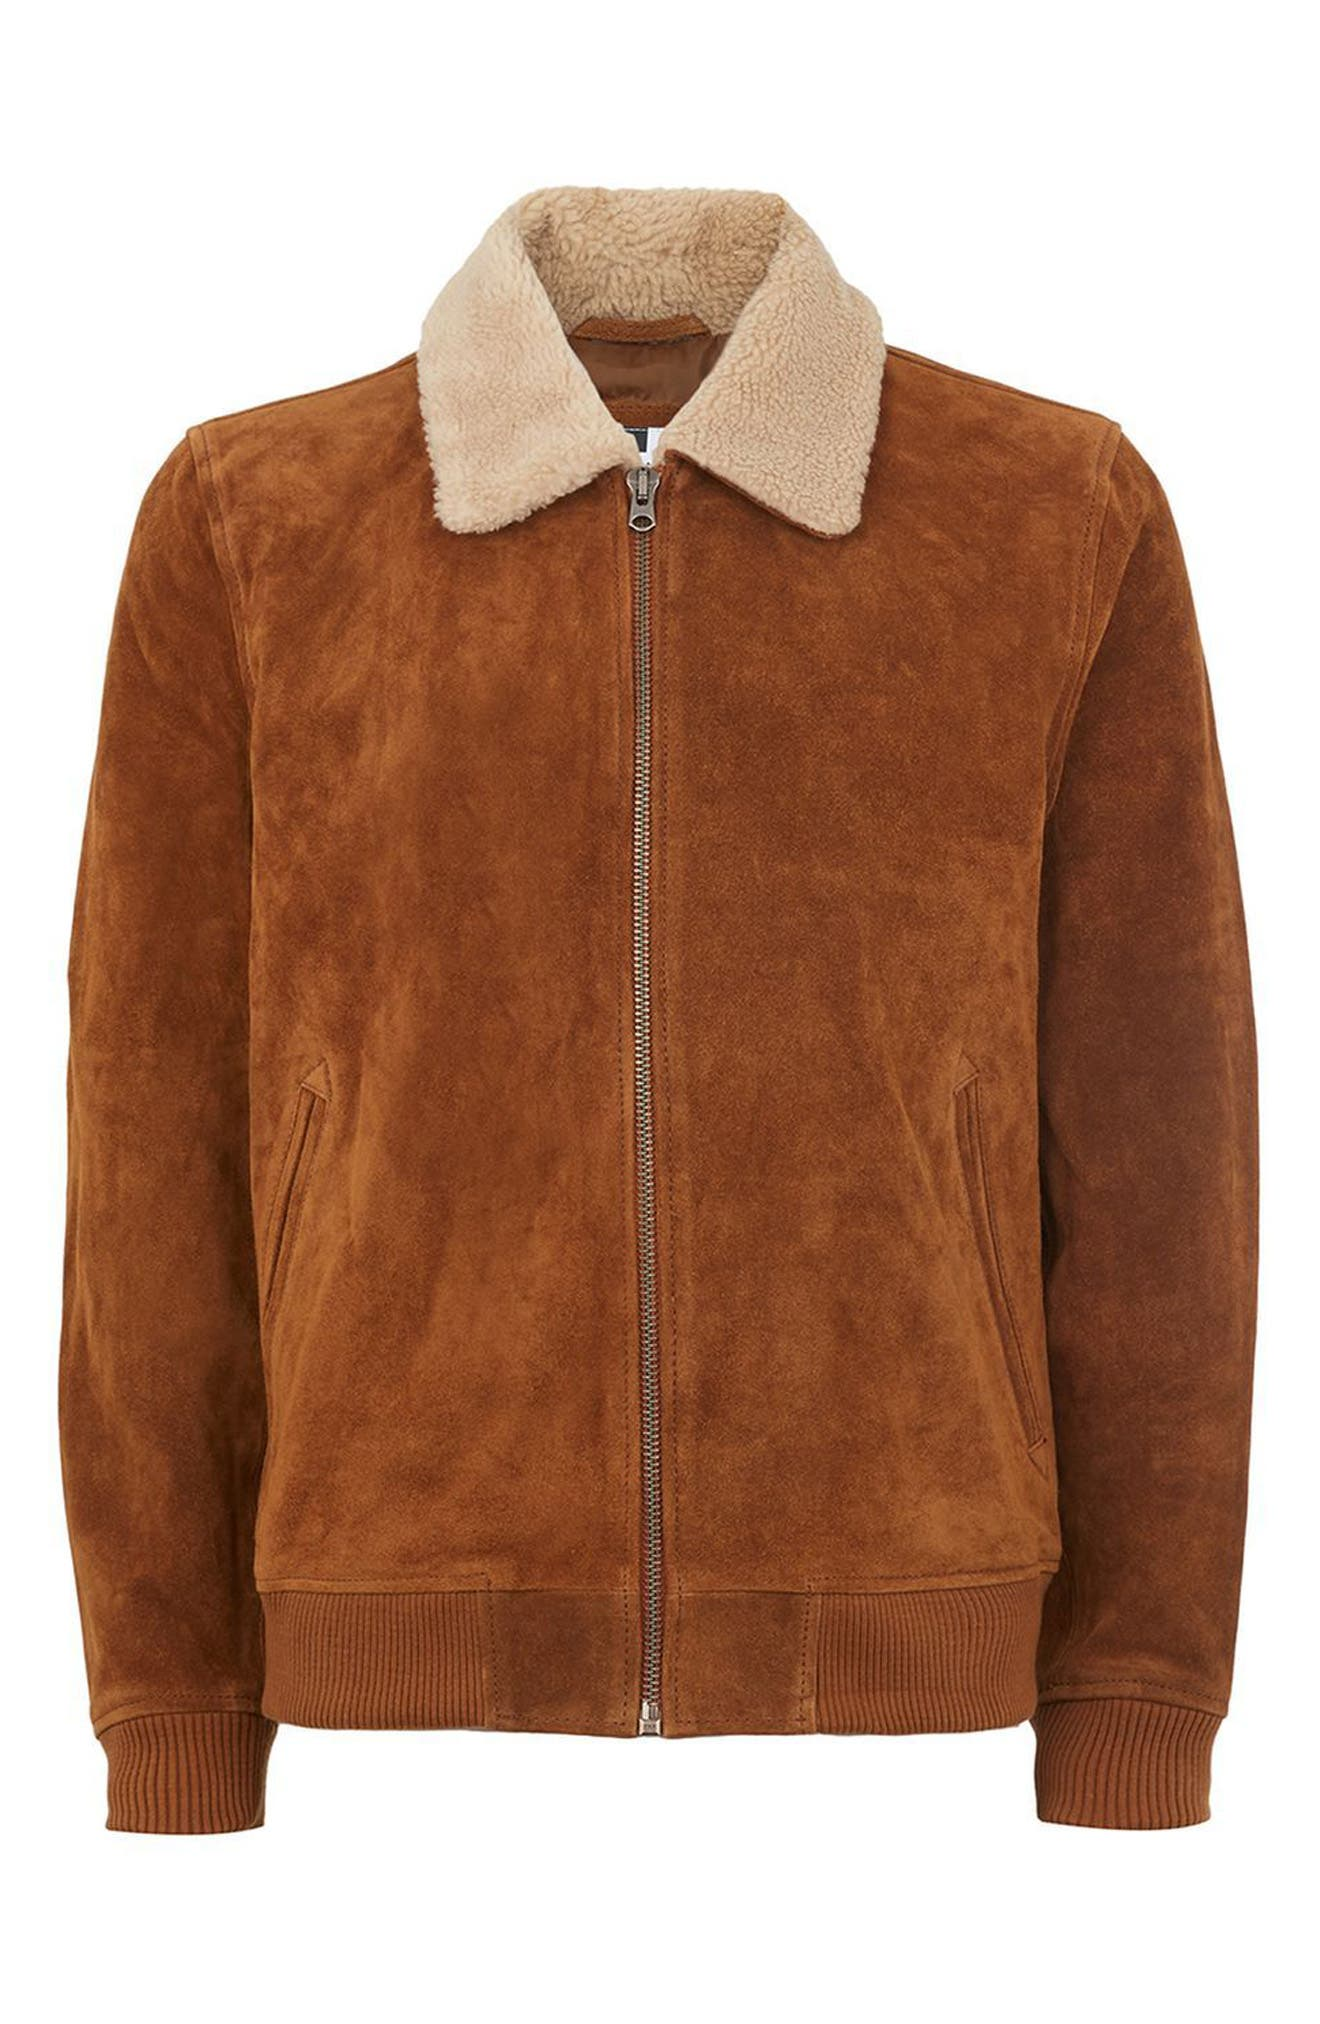 Borg Collar Suede Jacket,                             Alternate thumbnail 4, color,                             Brown